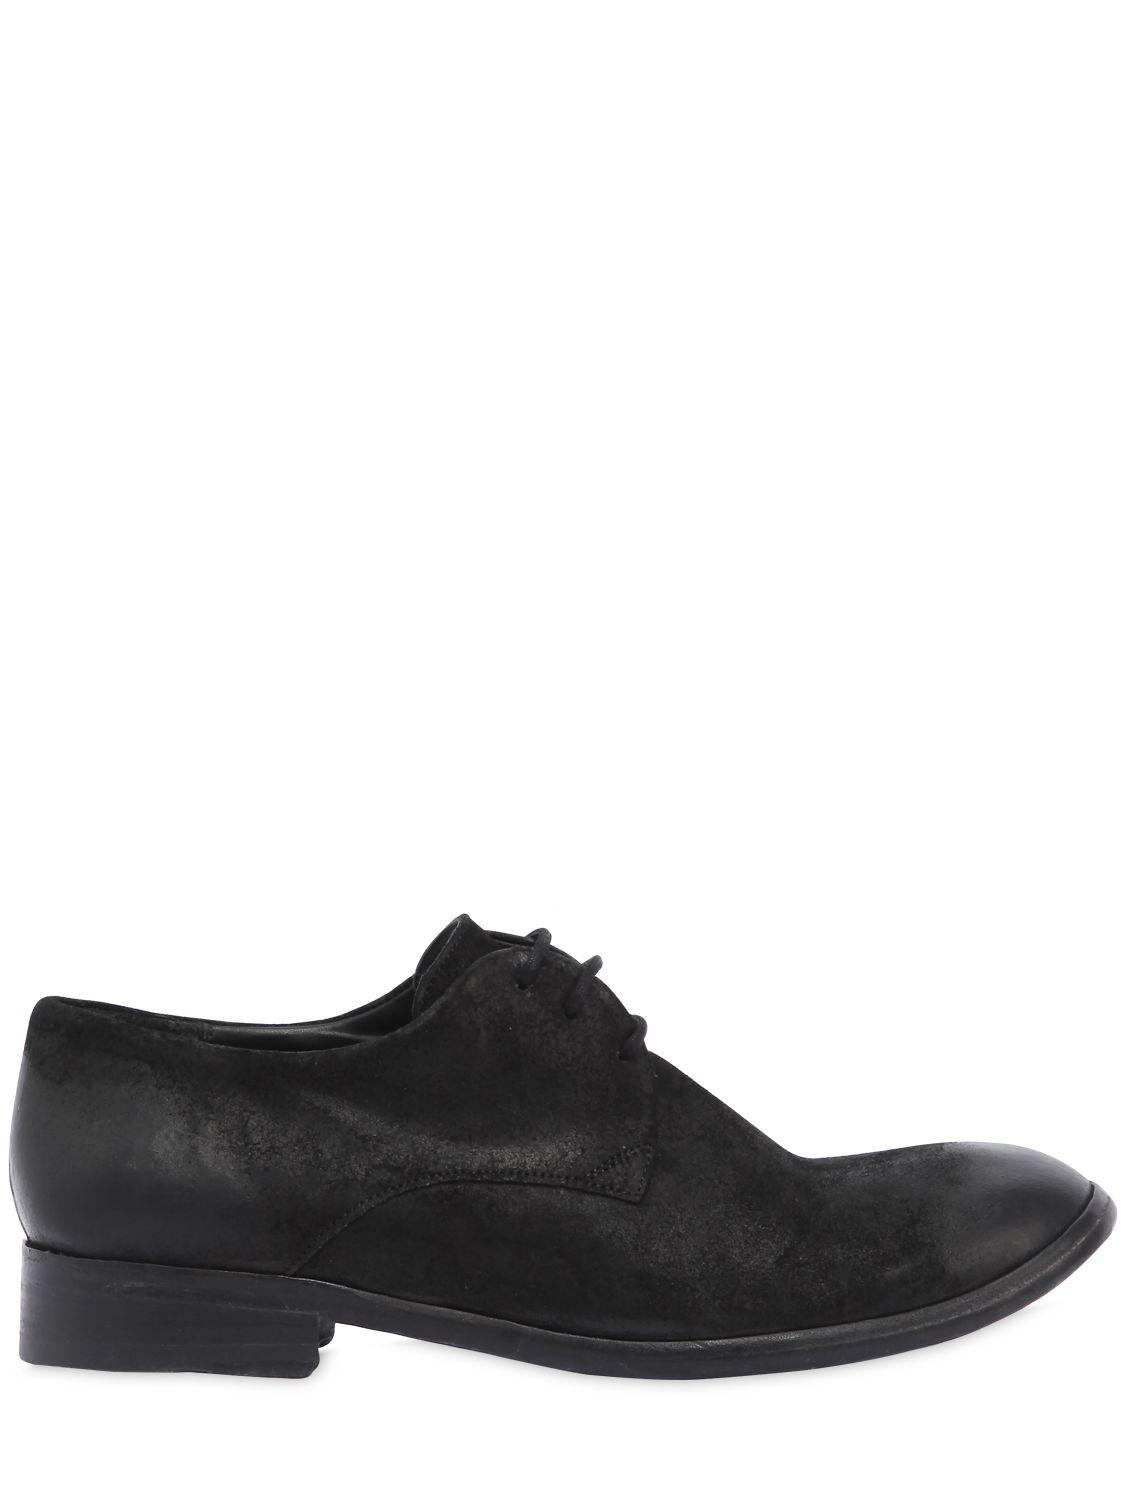 The Last Conspiracy WAXED SUEDE LACE-UP SHOES qcryv4KnMV